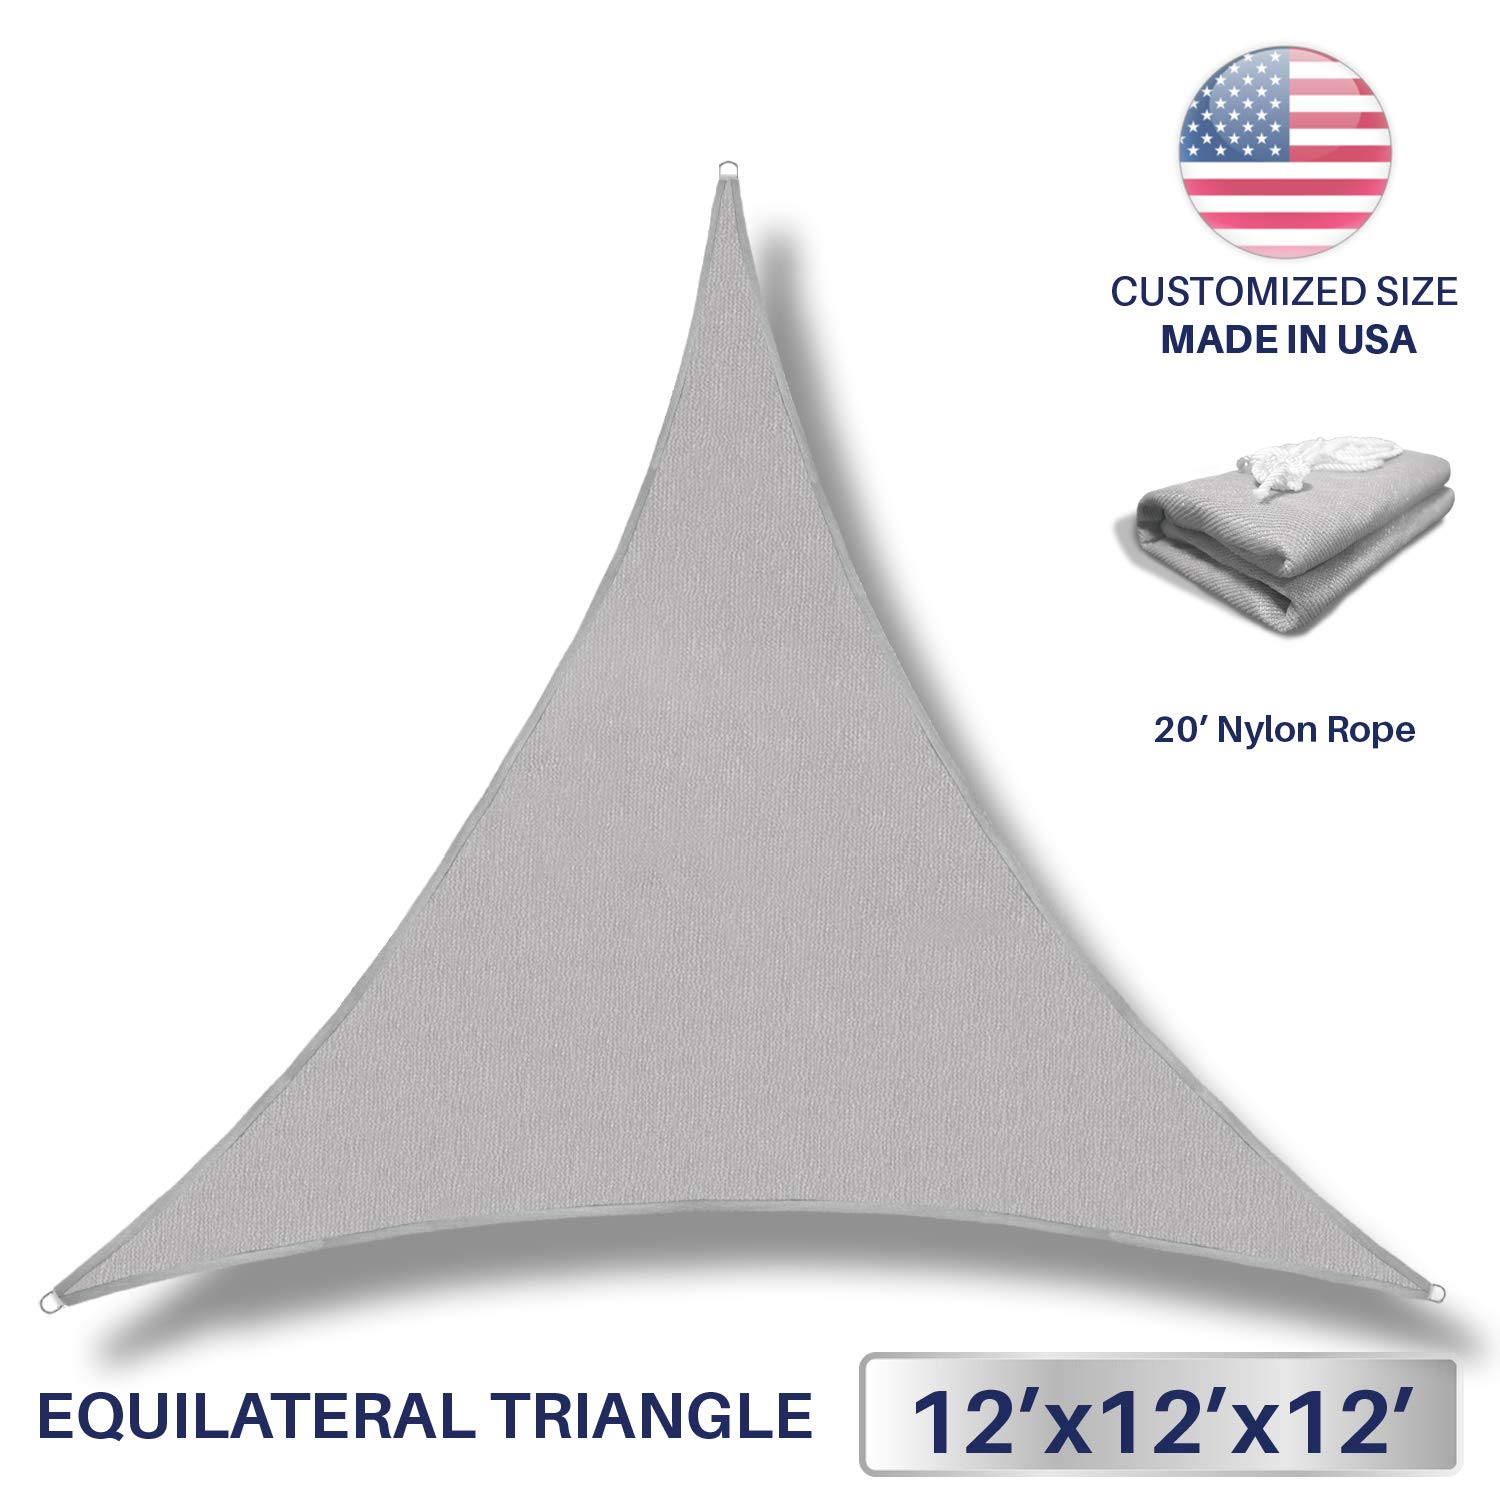 Windscreen4less 12' x 12' x 12' Sun Shade Sail Canopy in Light Grey with Commercial Grade (3 Year Warranty) Customized